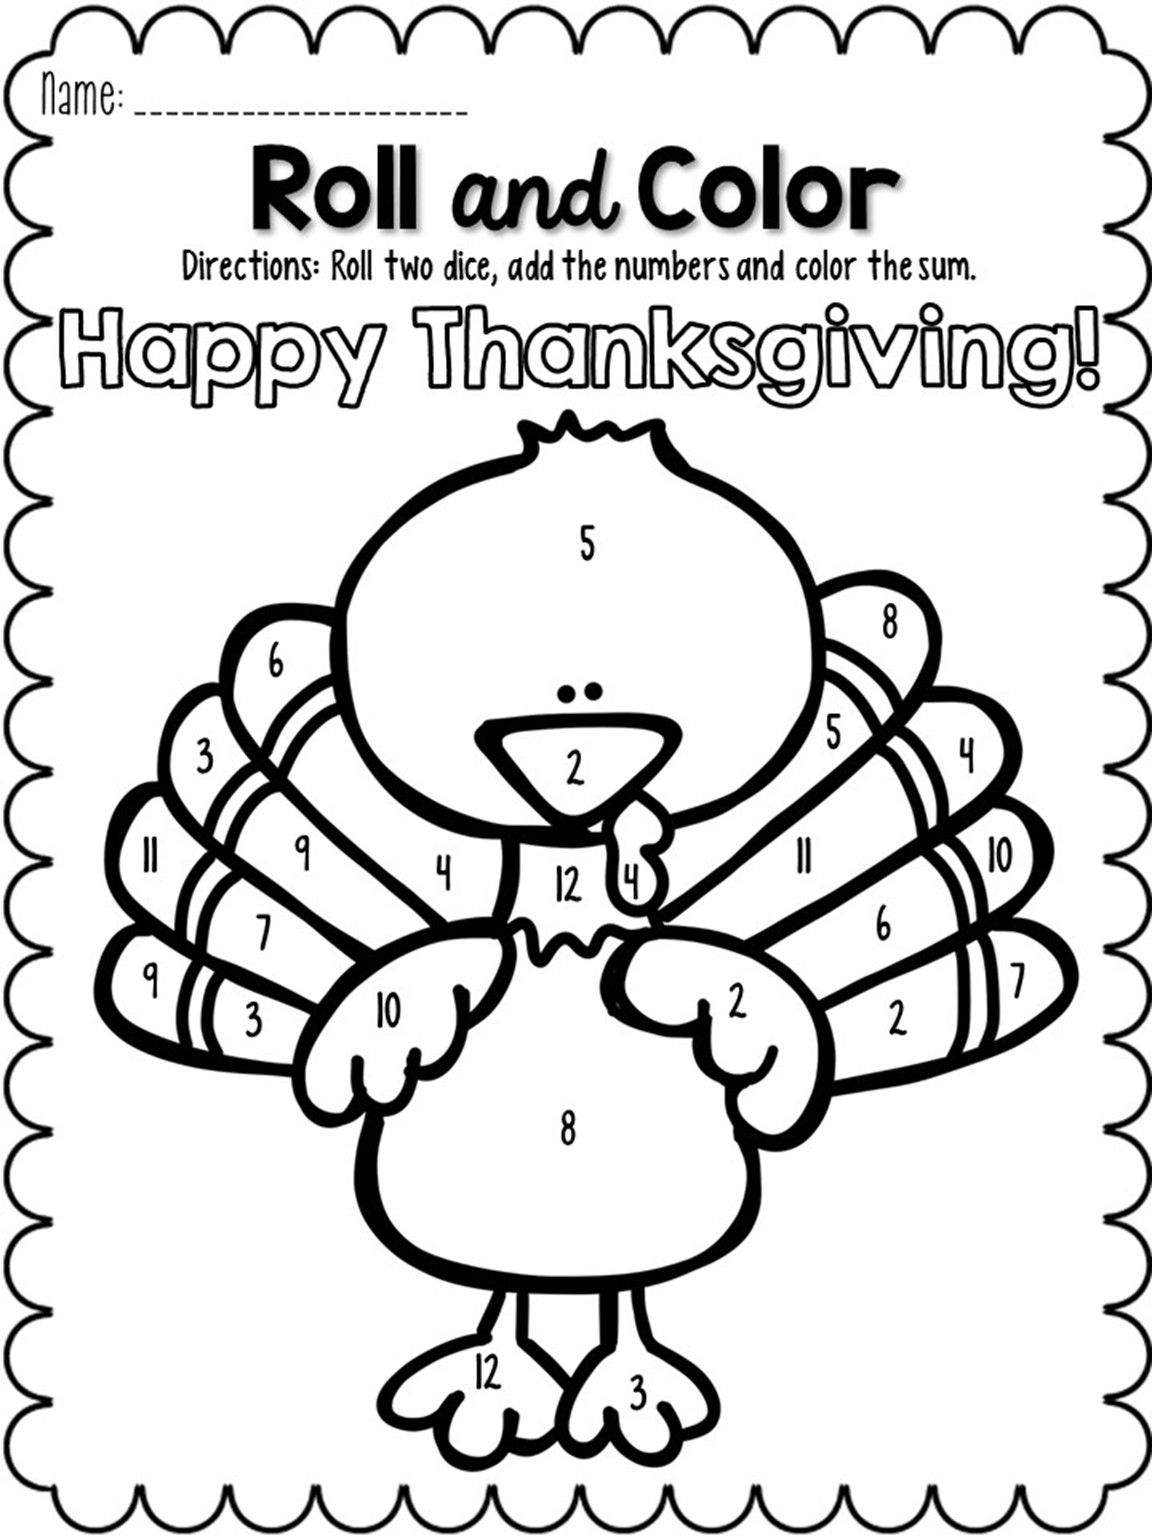 November Roll And Color Perfect For Thanksgiving Thanksgiving Worksheets Worksheets For Kids November Classroom [ 1536 x 1152 Pixel ]